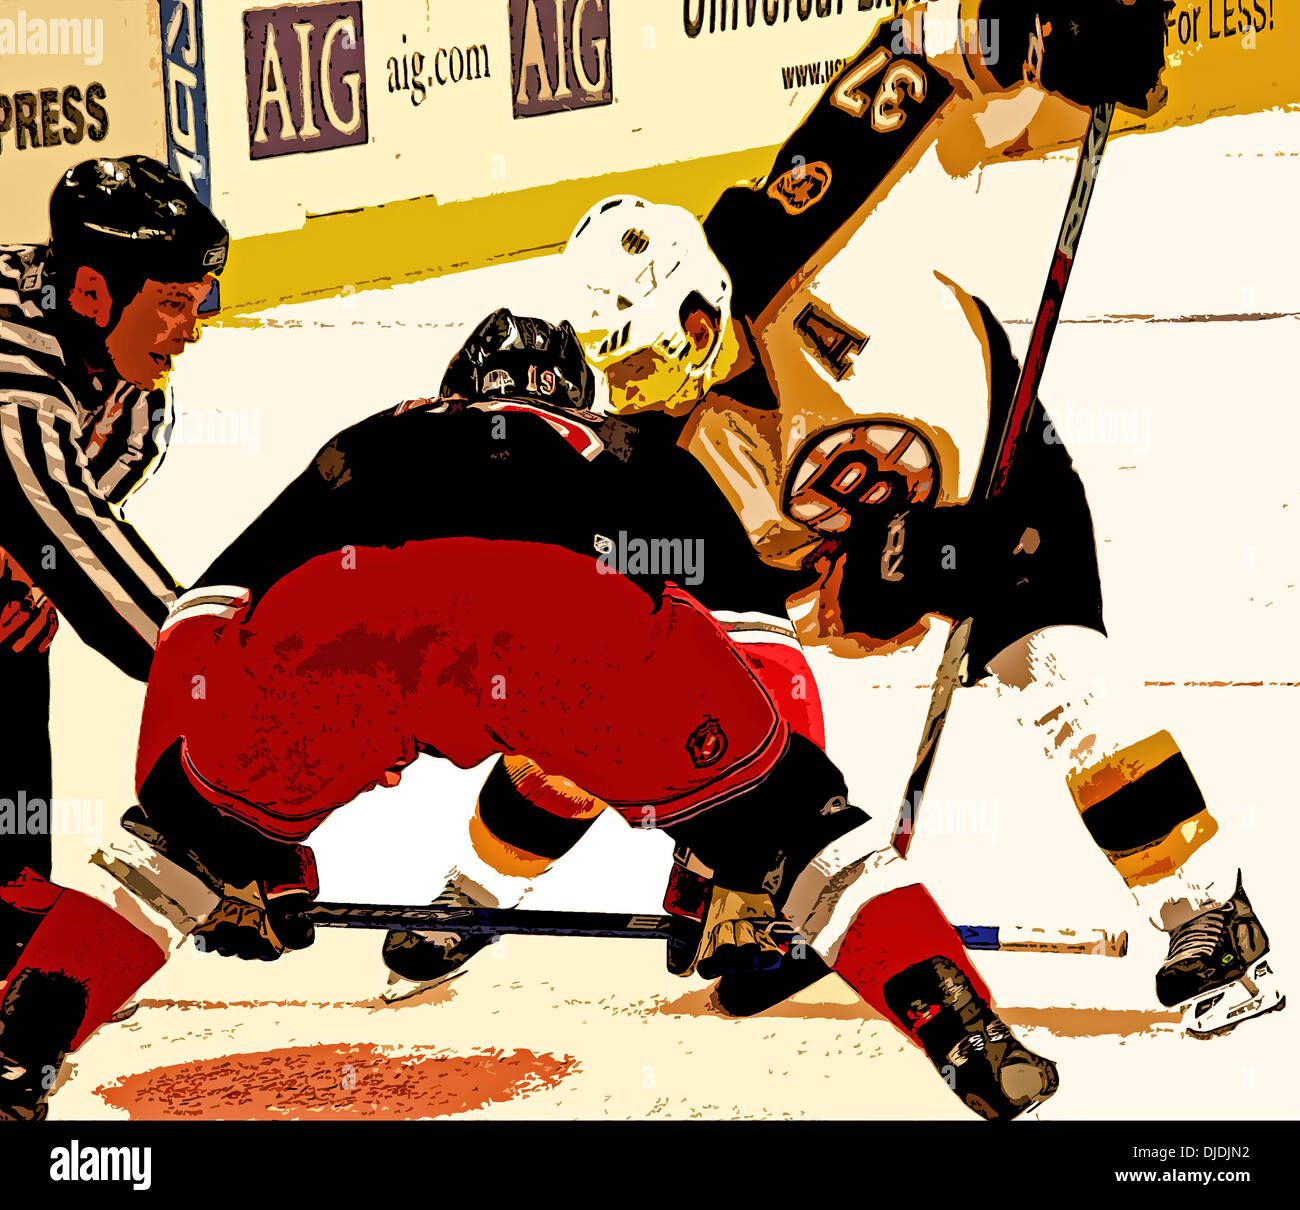 Faceoff in a NHL hockey game between the New York Rangers and the Boston Bruins in New York recolored in Photoshop. - Stock Image